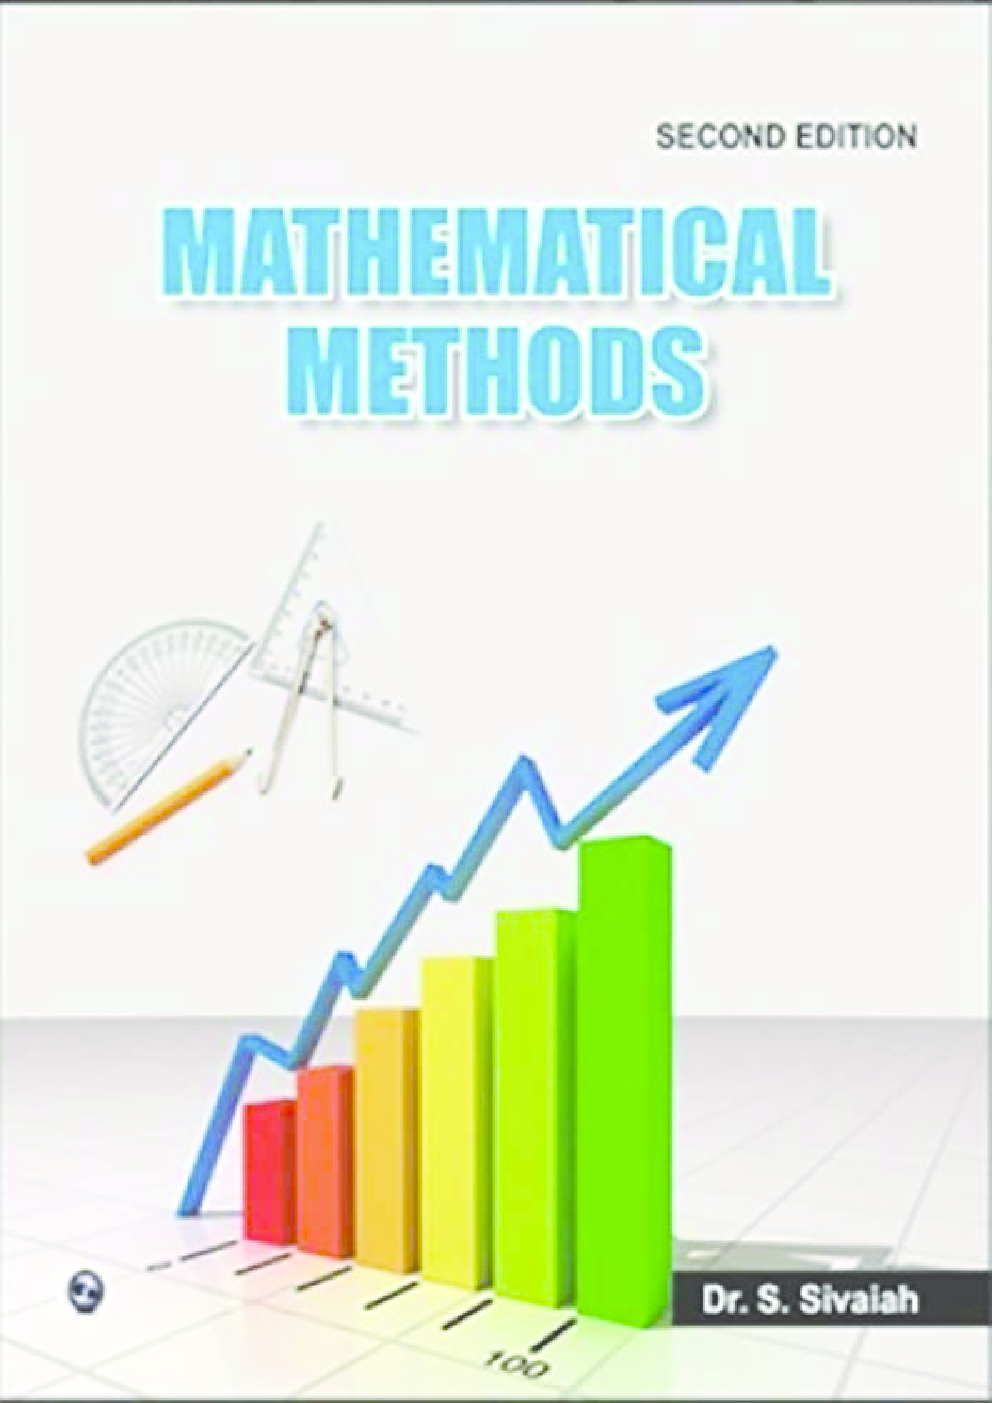 Mathematical Methods By Dr. S. Sivaiah - Page 1